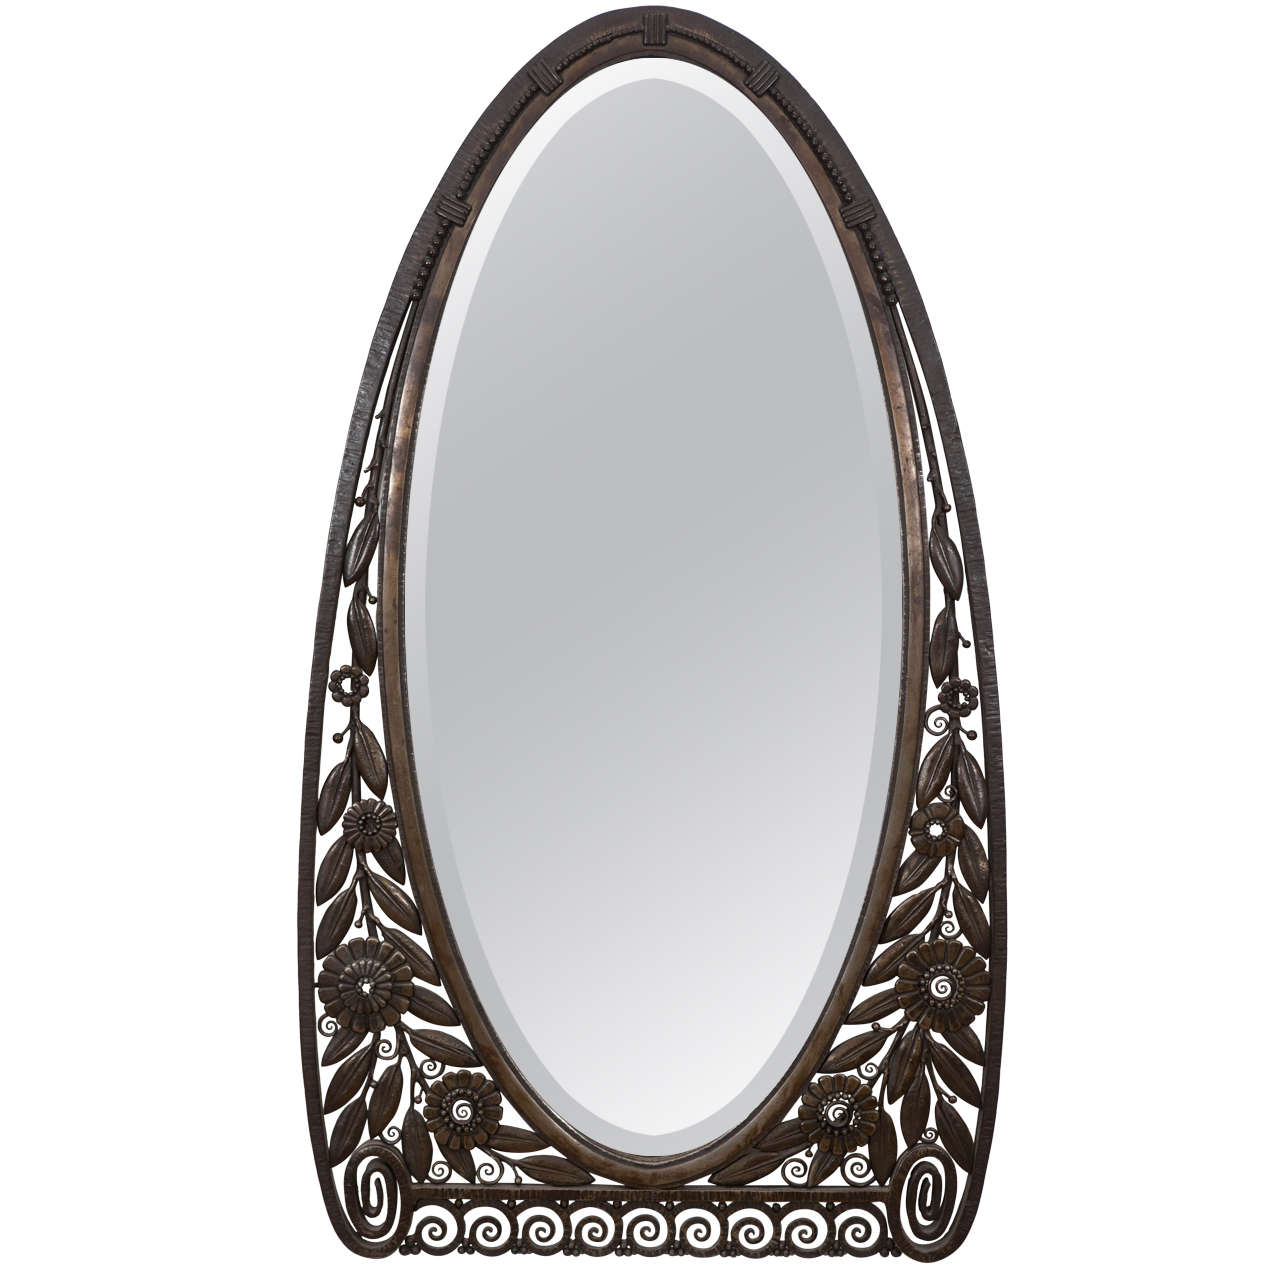 Art deco wrought iron wall mirror attributed to raymond subes at art deco wrought iron wall mirror attributed to raymond subes 1 amipublicfo Image collections